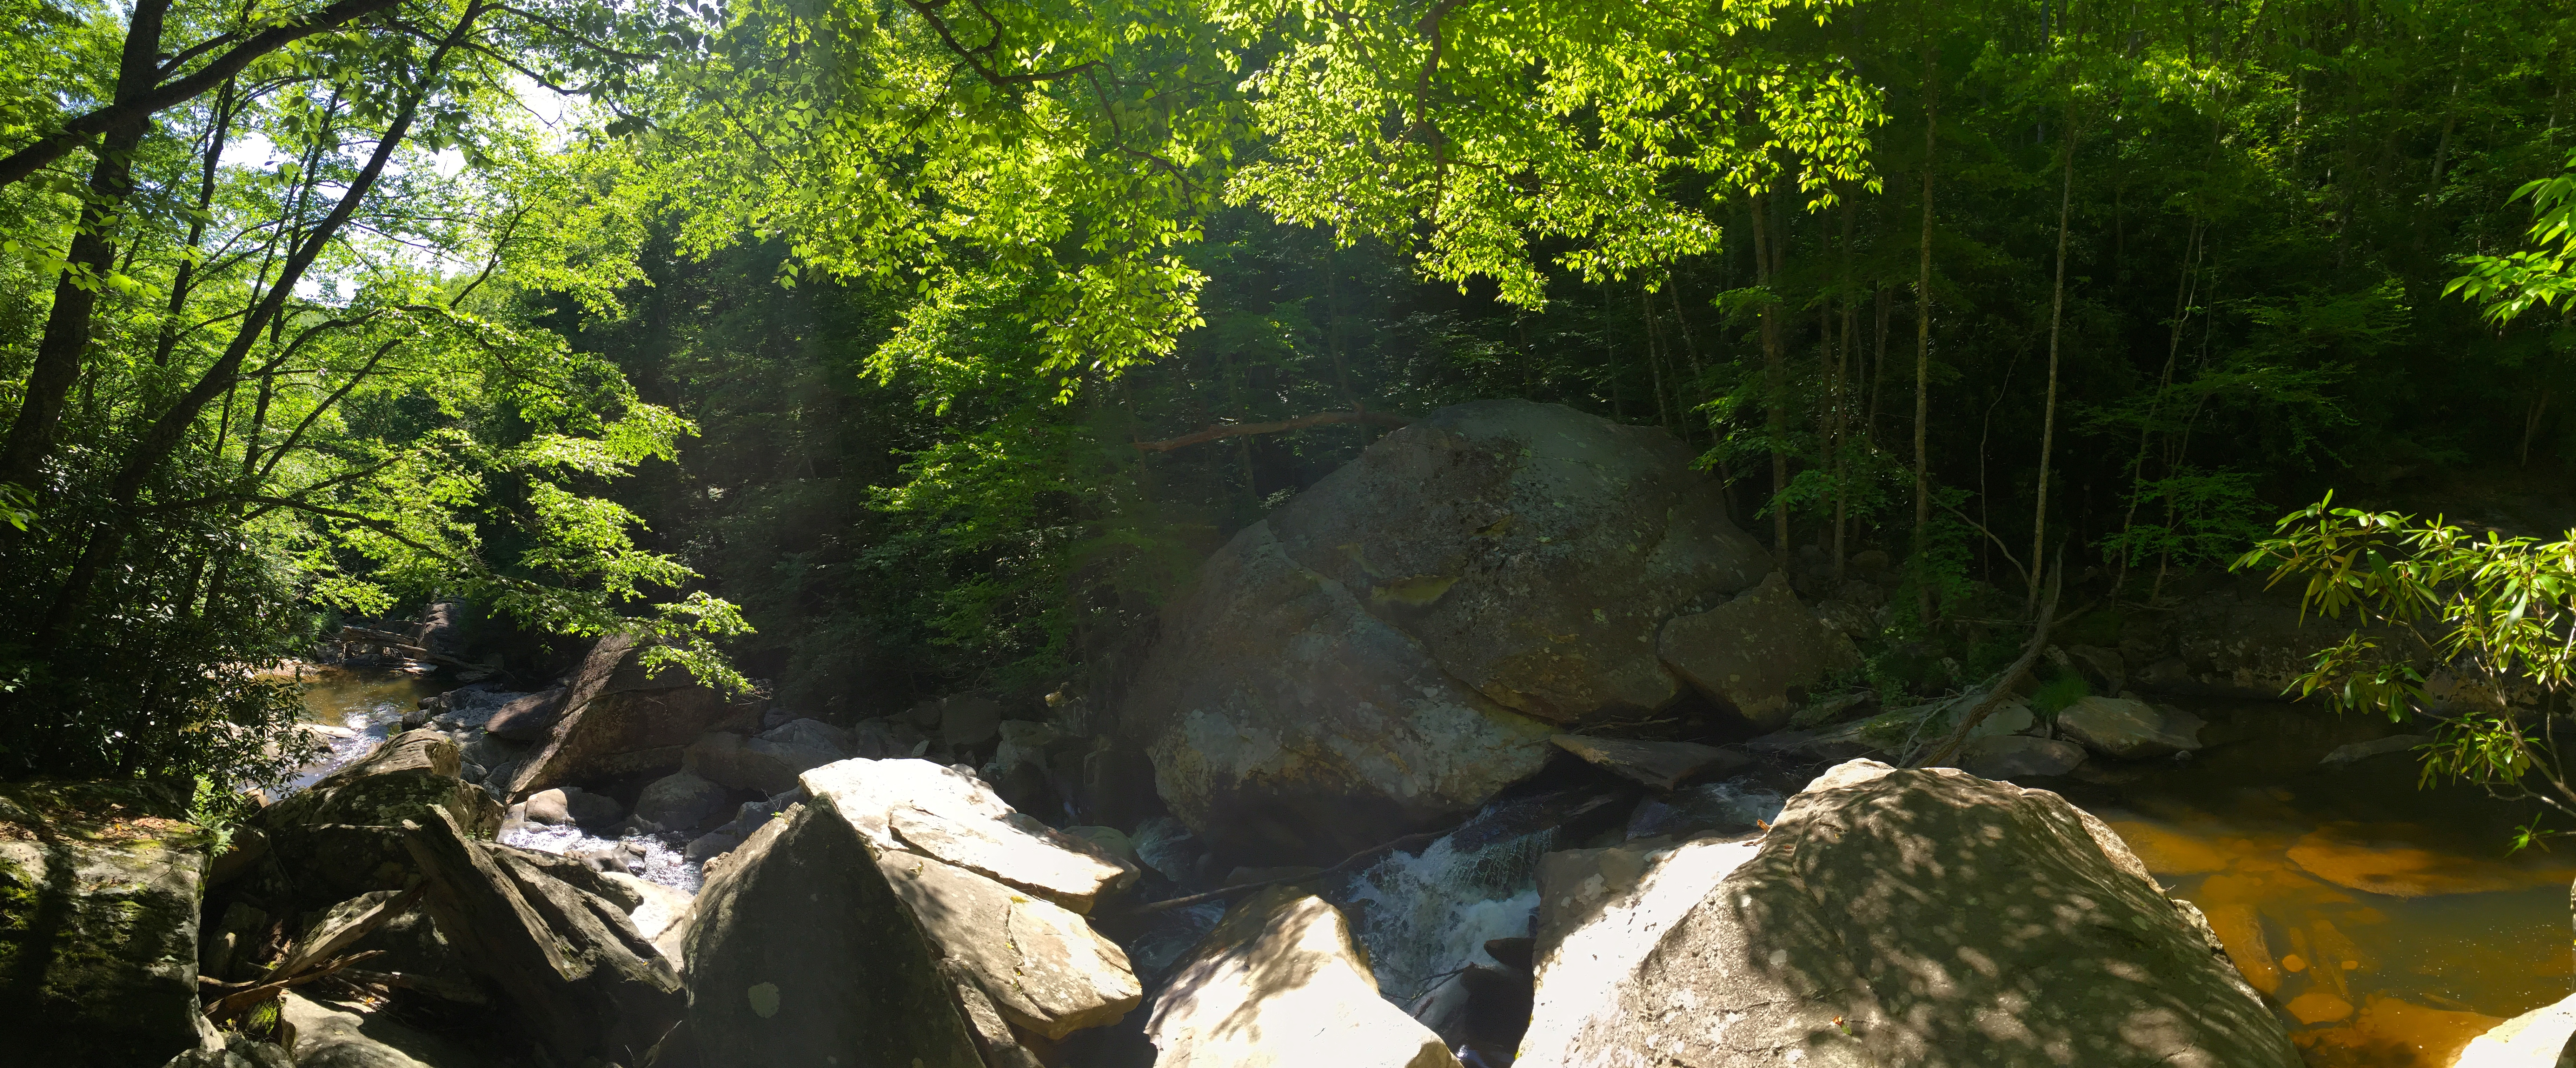 A view of the Boone Fork around Mile Marker 2 of the Boone Fork Trail, a five-mile loop starting from the Julian Price Memorial Park Picnic Area.